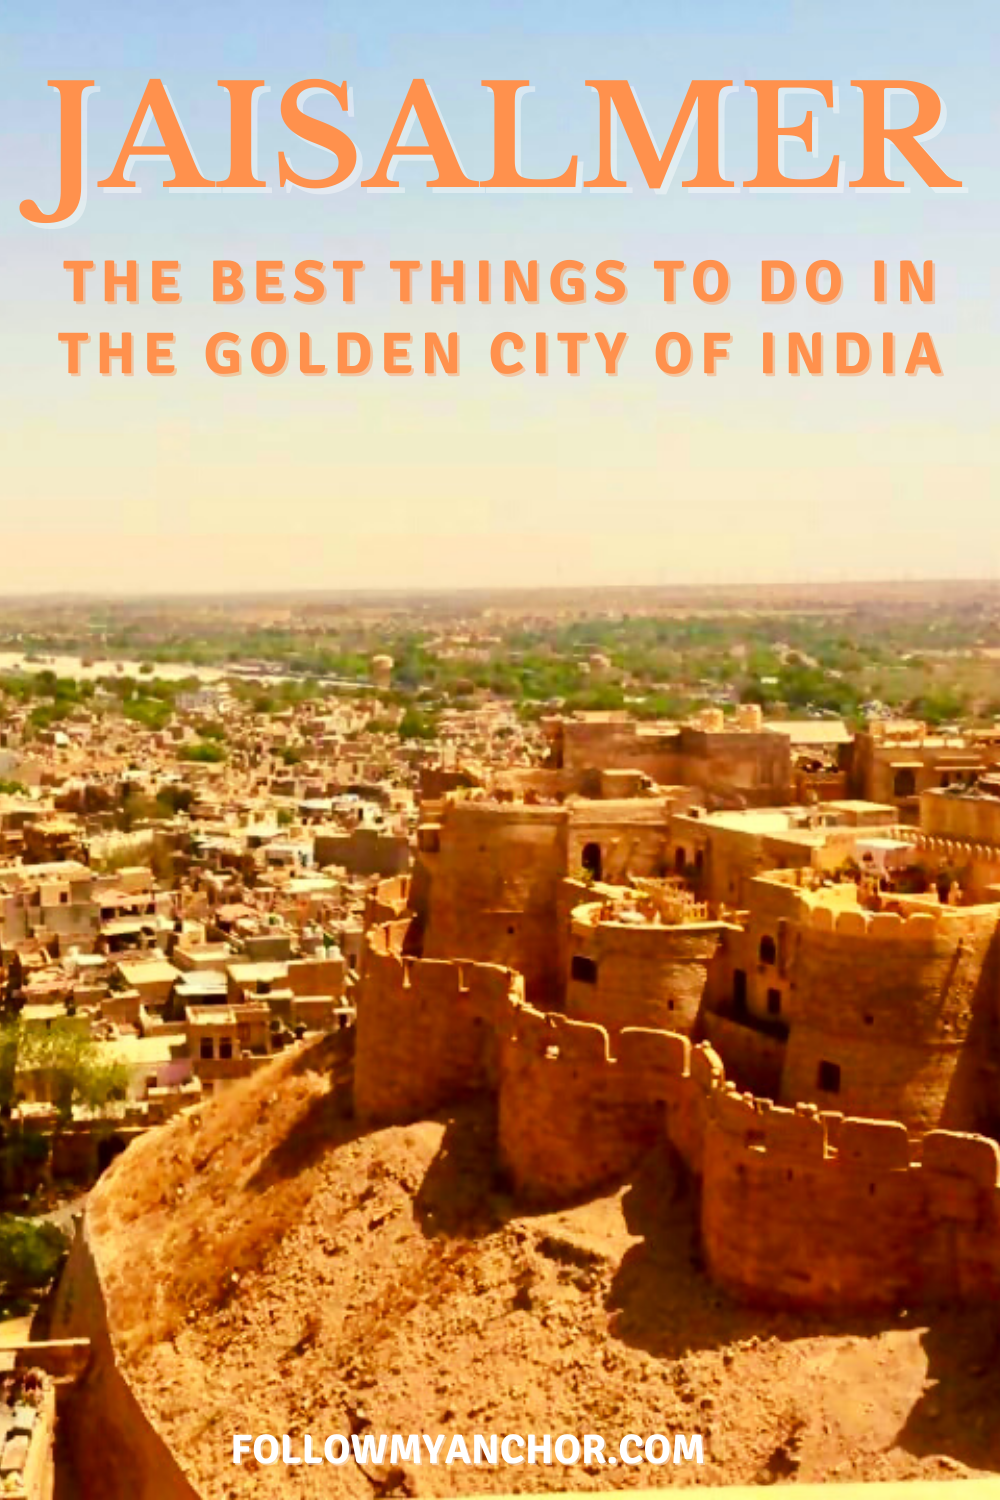 JAISALMER: THE BEST THINGS TO DO IN THE GOLDEN CITY OF INDIA